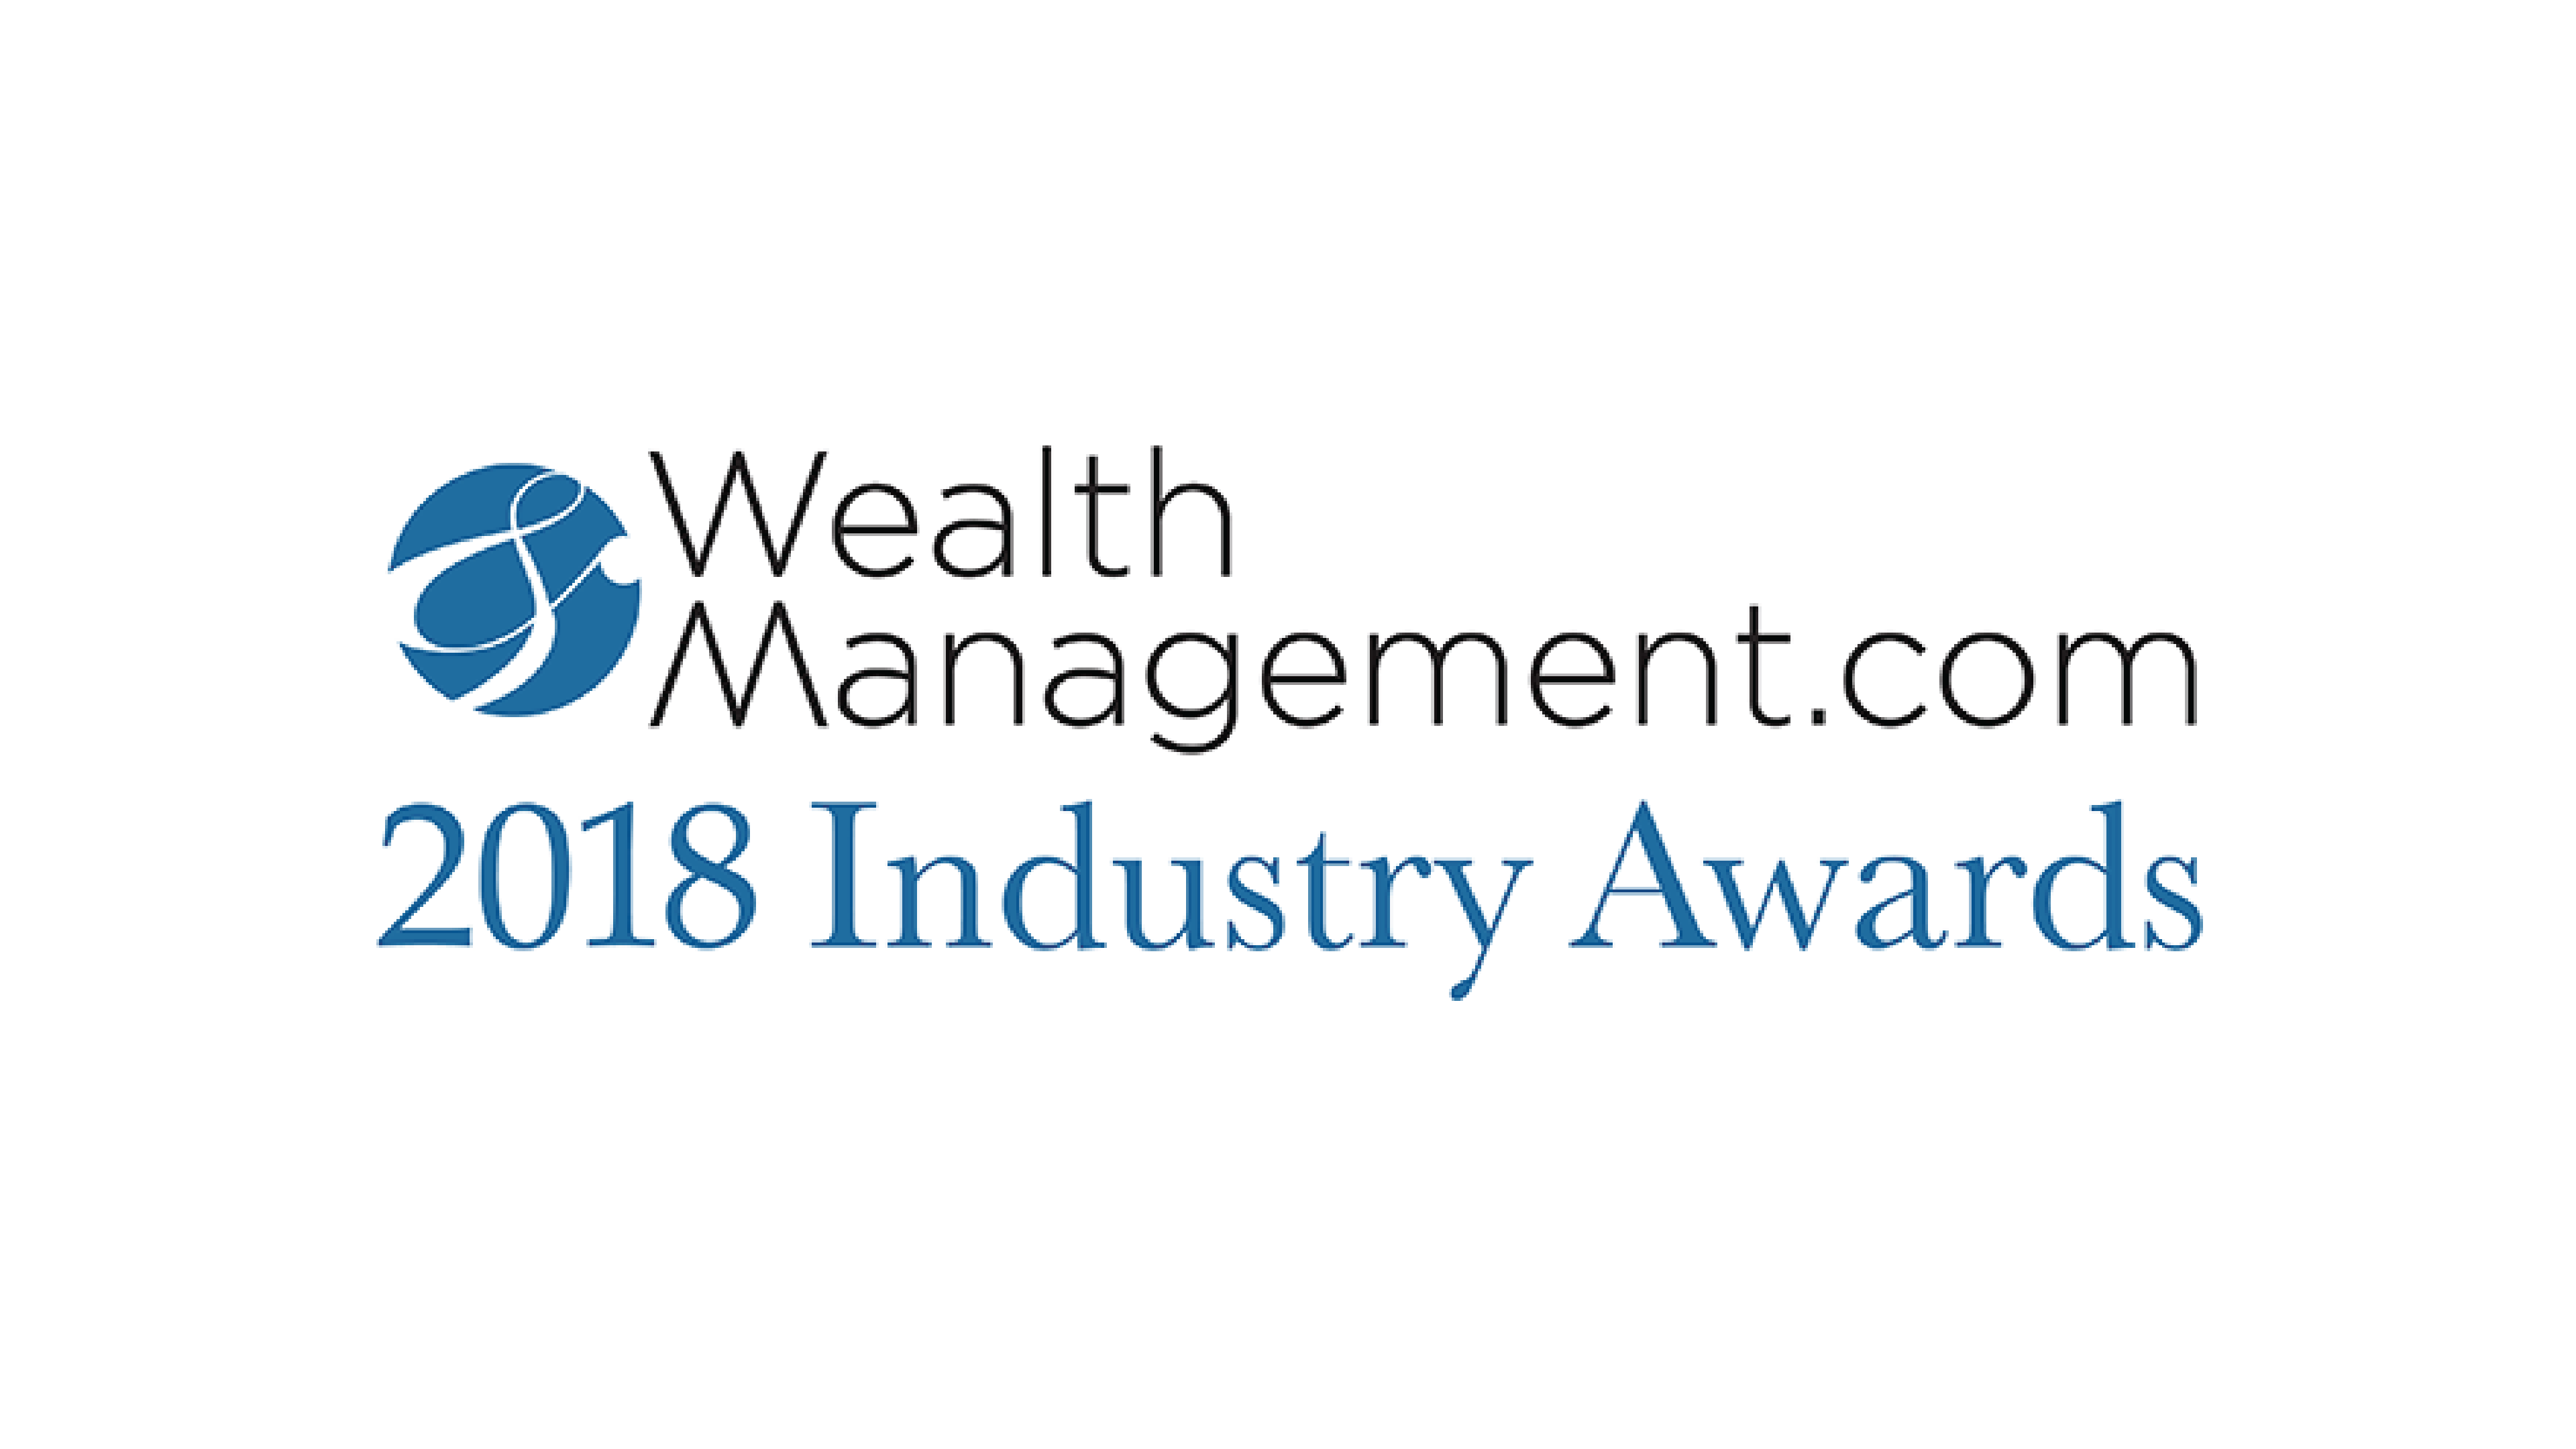 PFI ADVISORS ANNOUNCED AS FINALIST IN TWO CATEGORIES